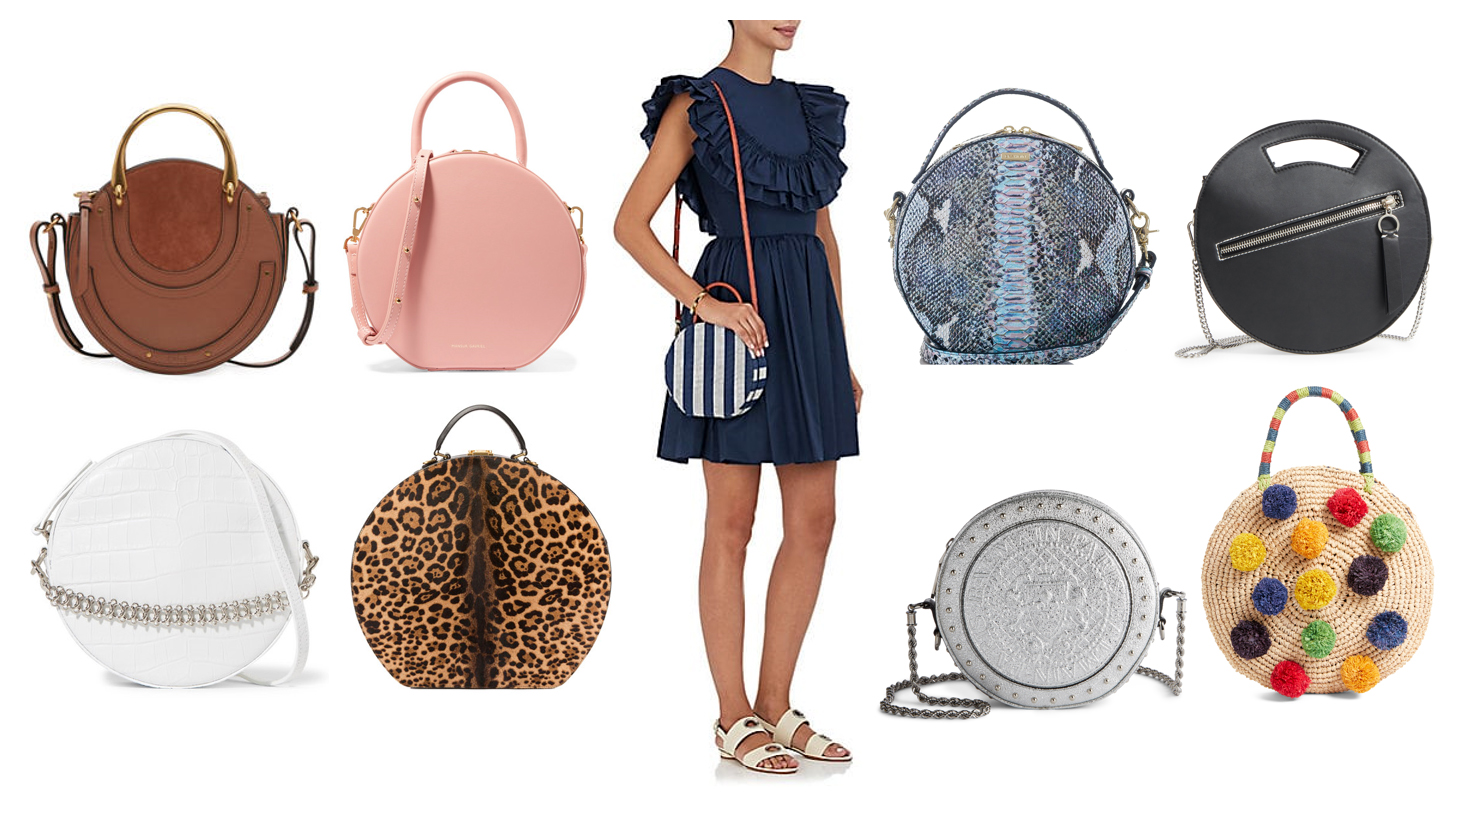 circle bags spring 2018 handbag trends it bags – Bay Area ...